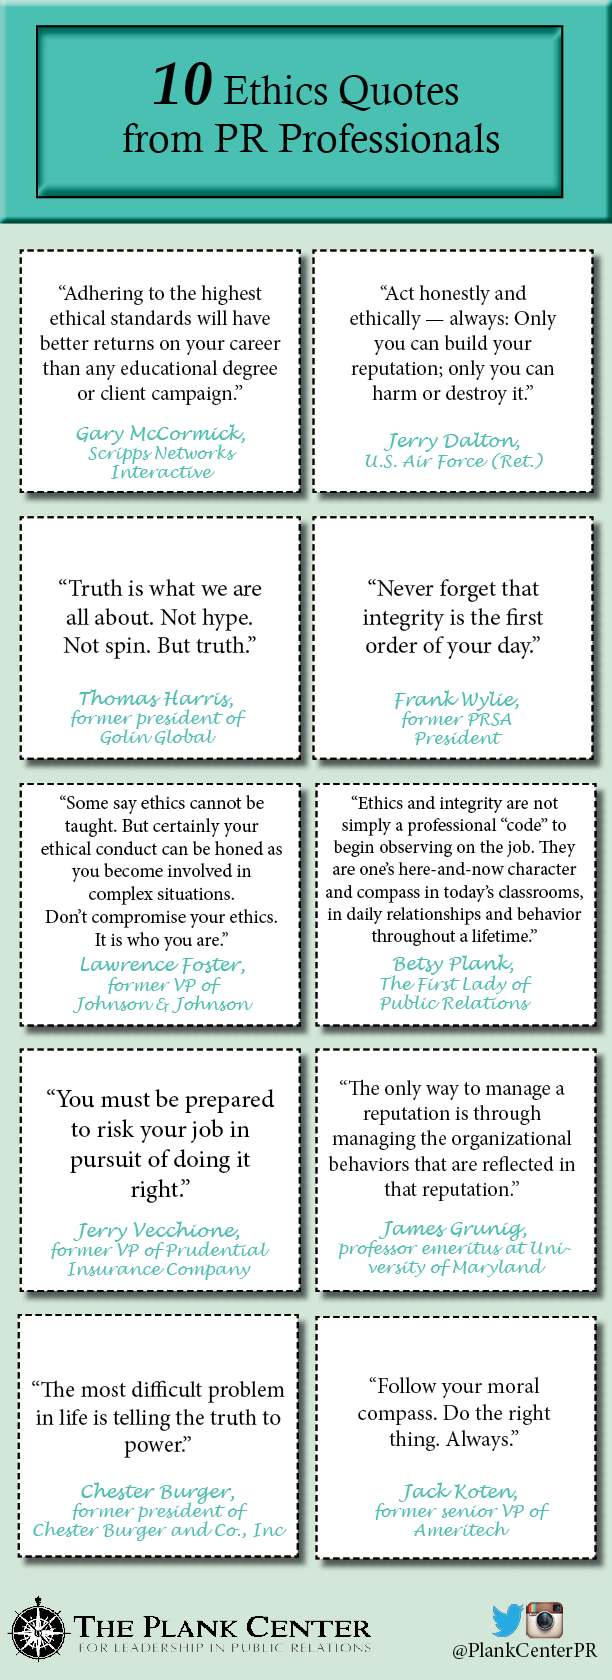 10 Ethics Quotes from PR pros